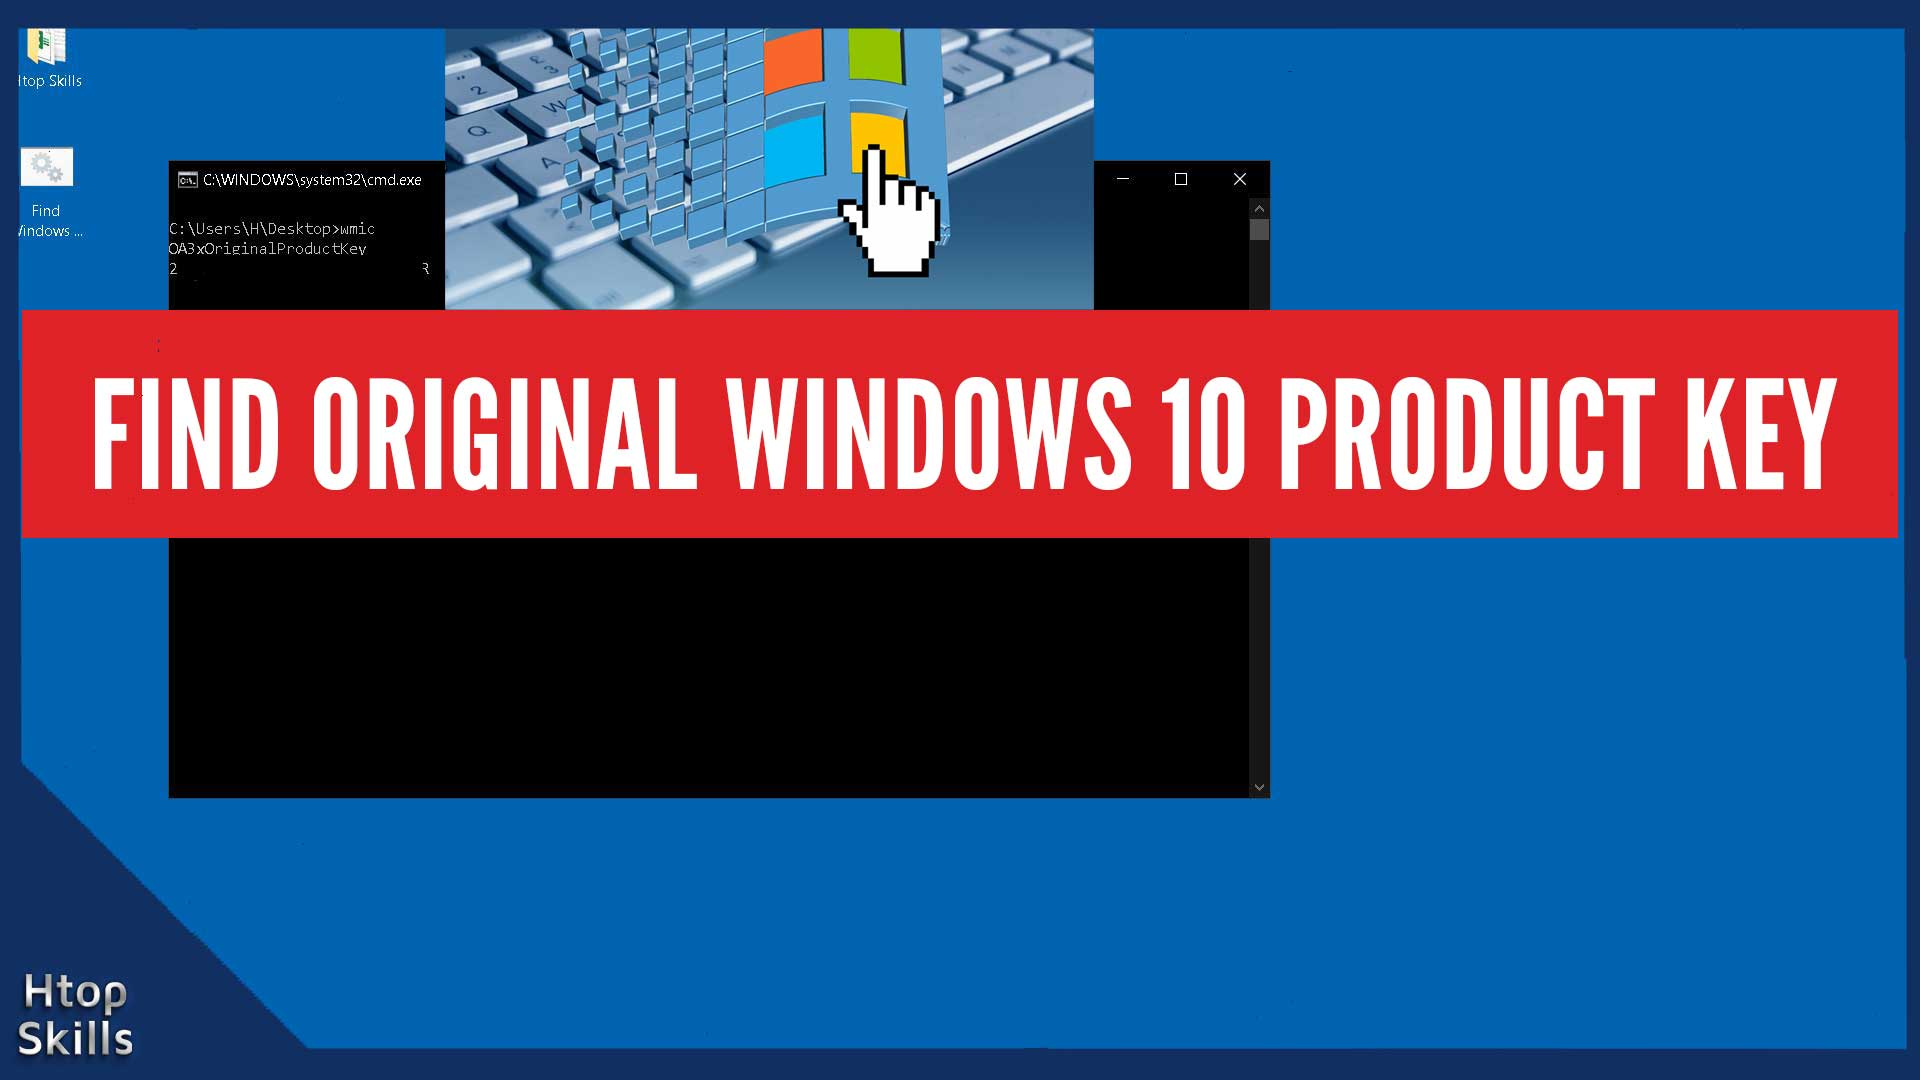 How To Find Original Windows 10 Product Key